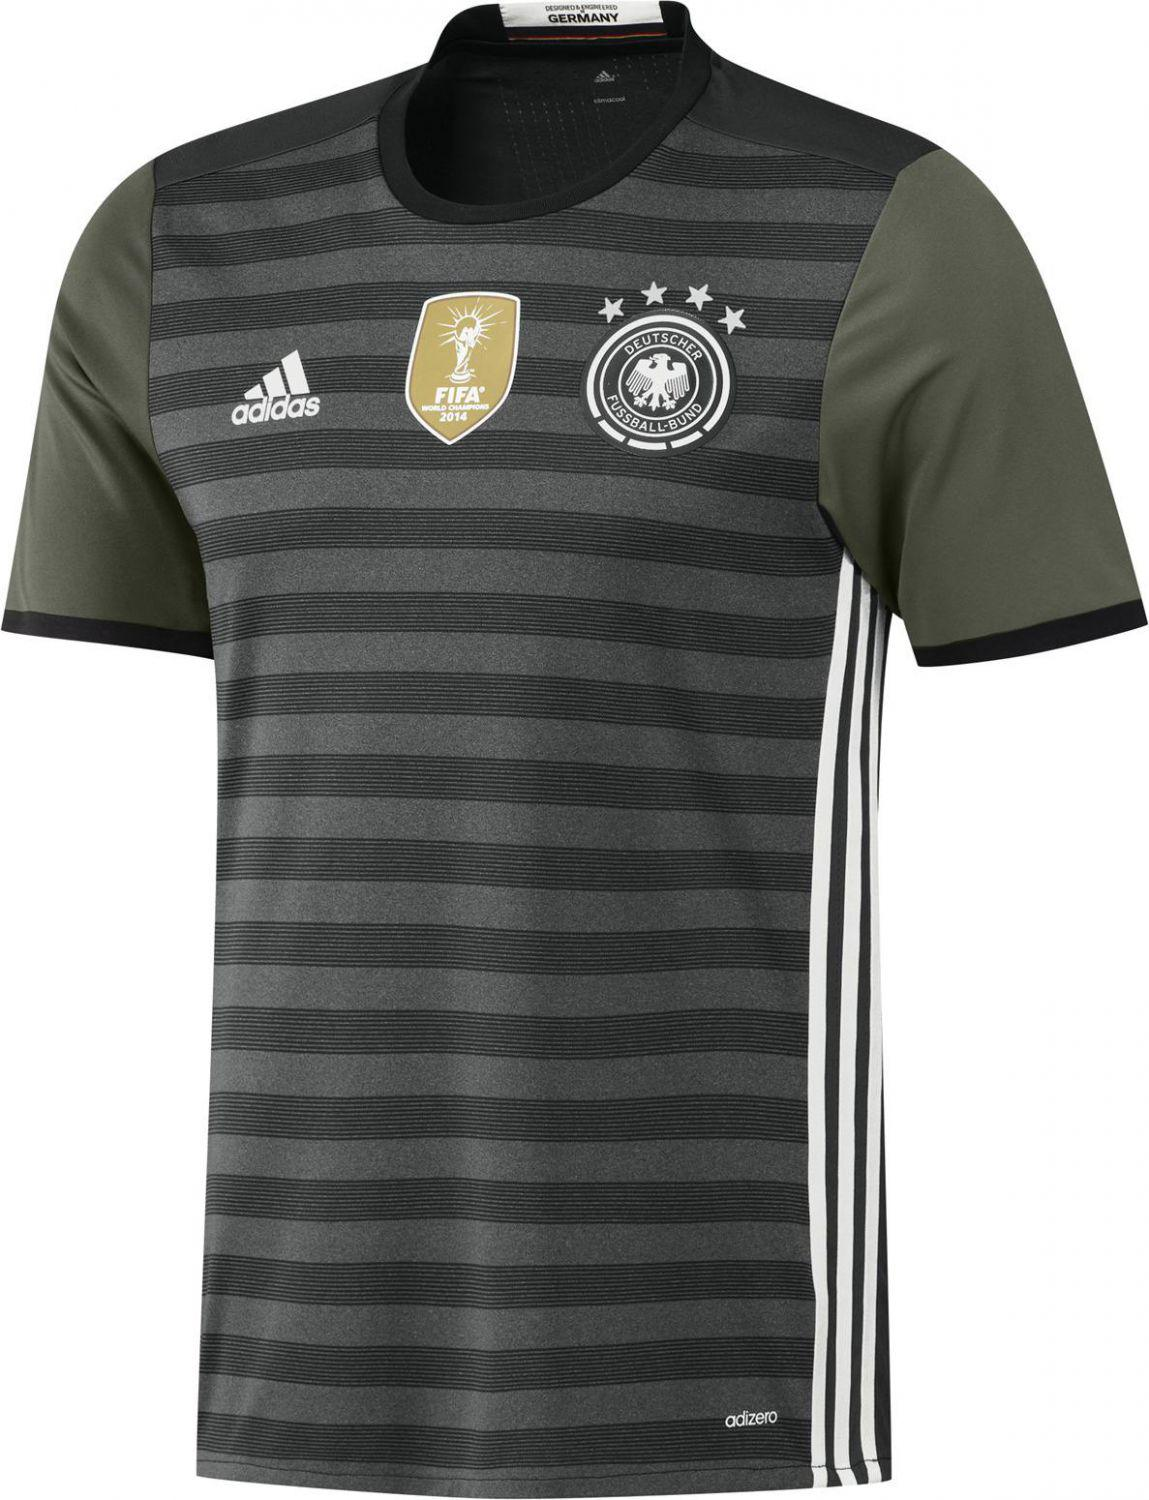 adidas DFB Away Authentic Jersey Auswärtstrikot (Größe: M, dark grey heather/off white/base green s15)